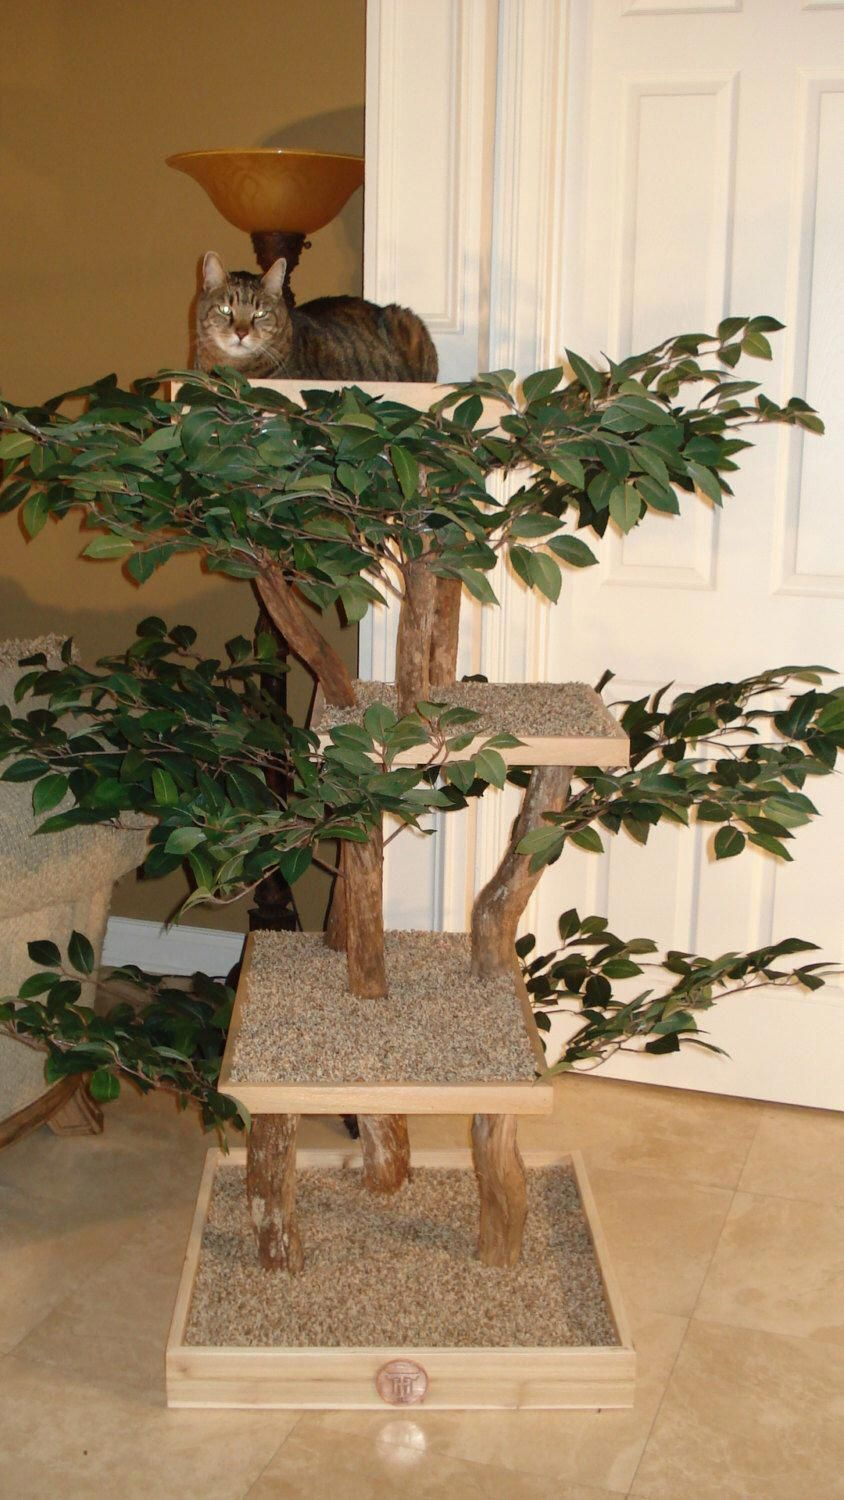 Park Art My WordPress Blog_How To Make A Cat Tree That Looks Like A Real Tree